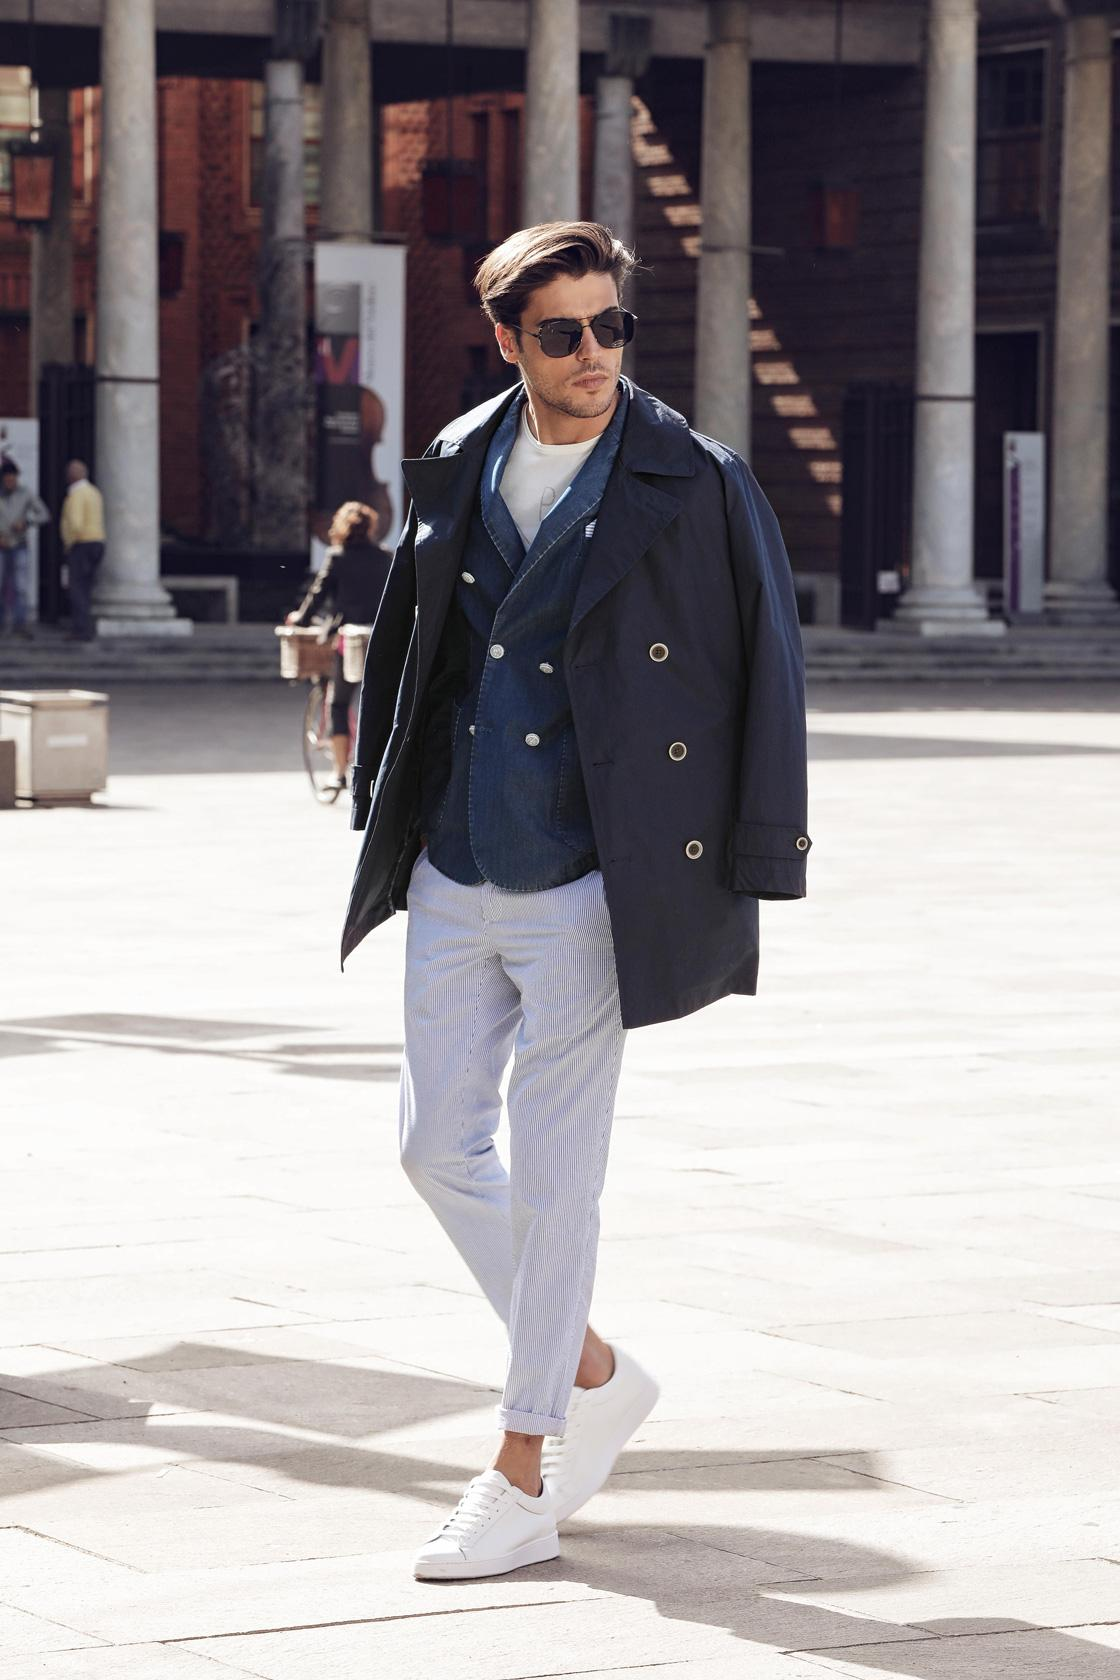 Guardaroba Uomo Casual Must Have Uomo Pe2019 Blog Negozi Pellizzari